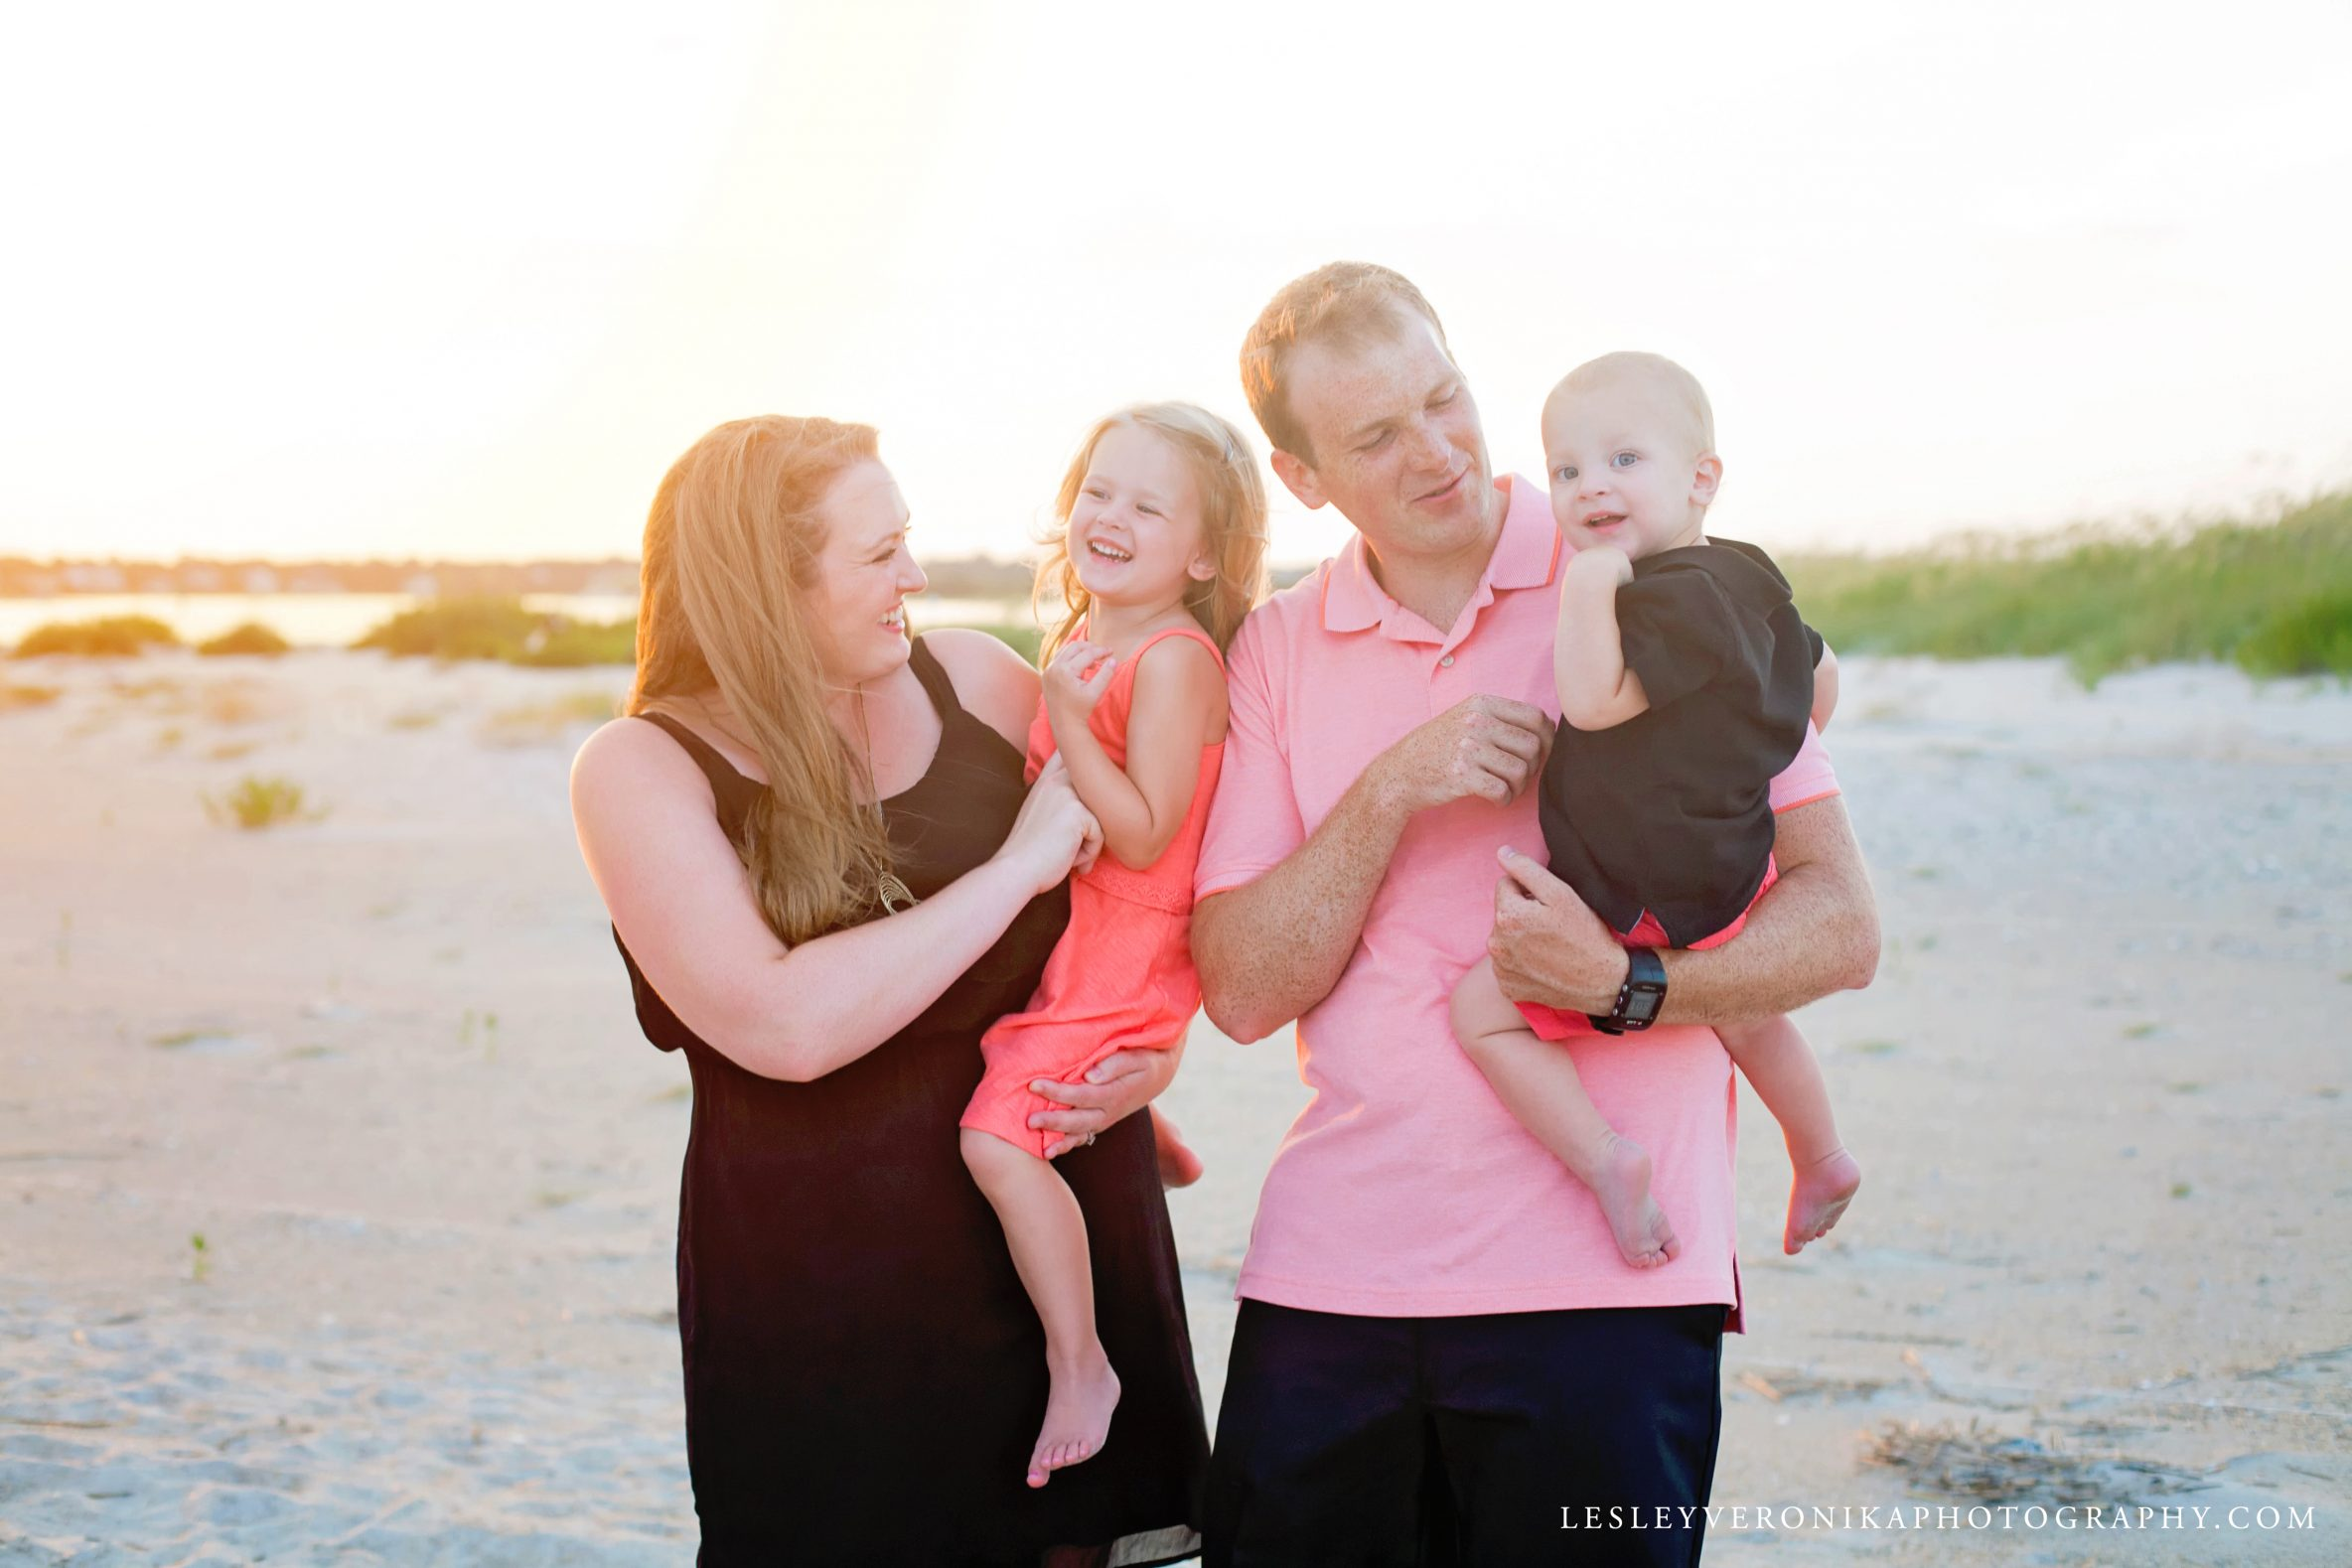 003Wilmington-nc-family-photography-7076-e1499362330785